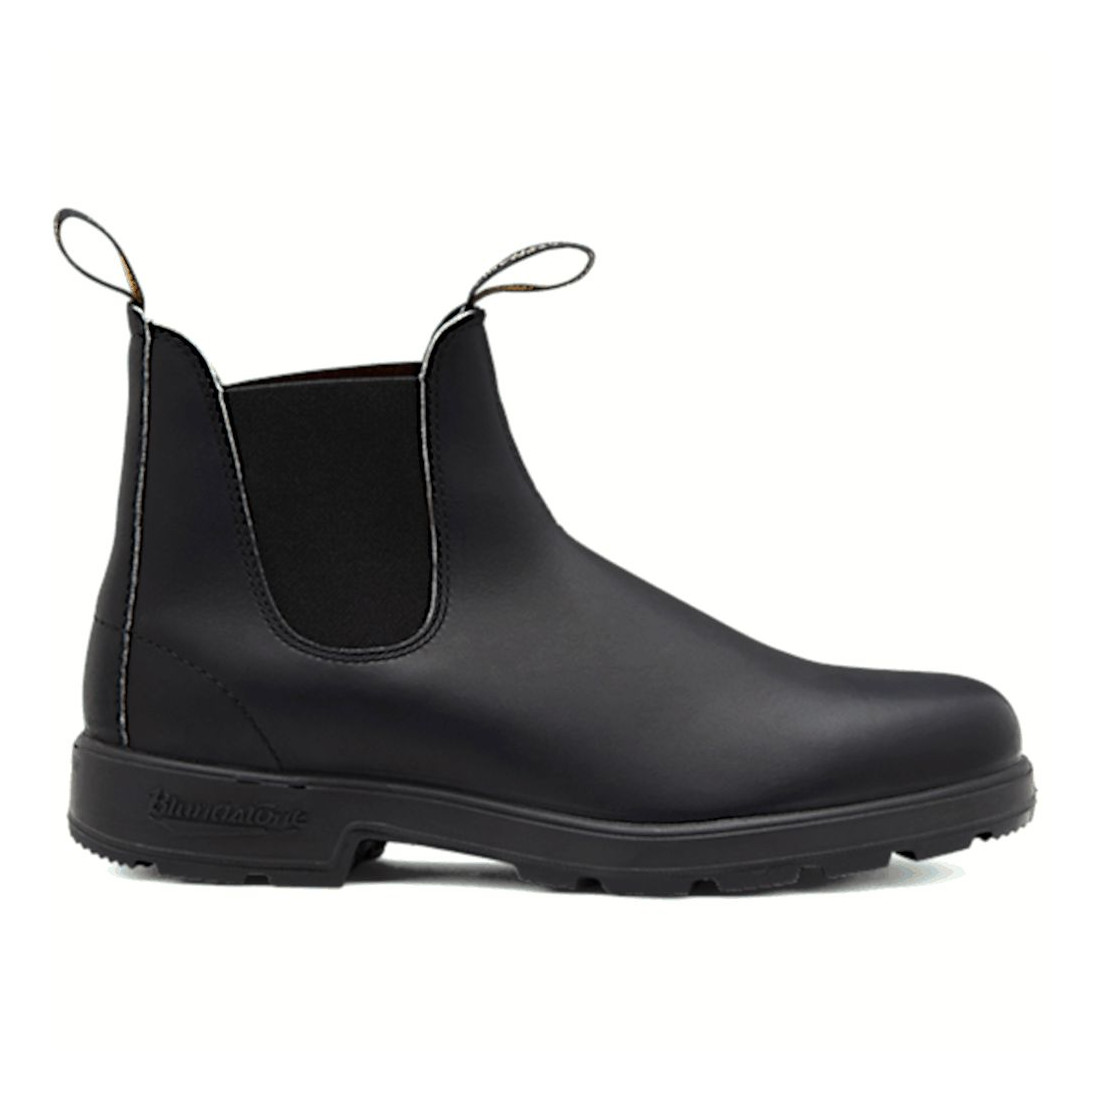 booties woman blundstone bccal0012 510black 6185